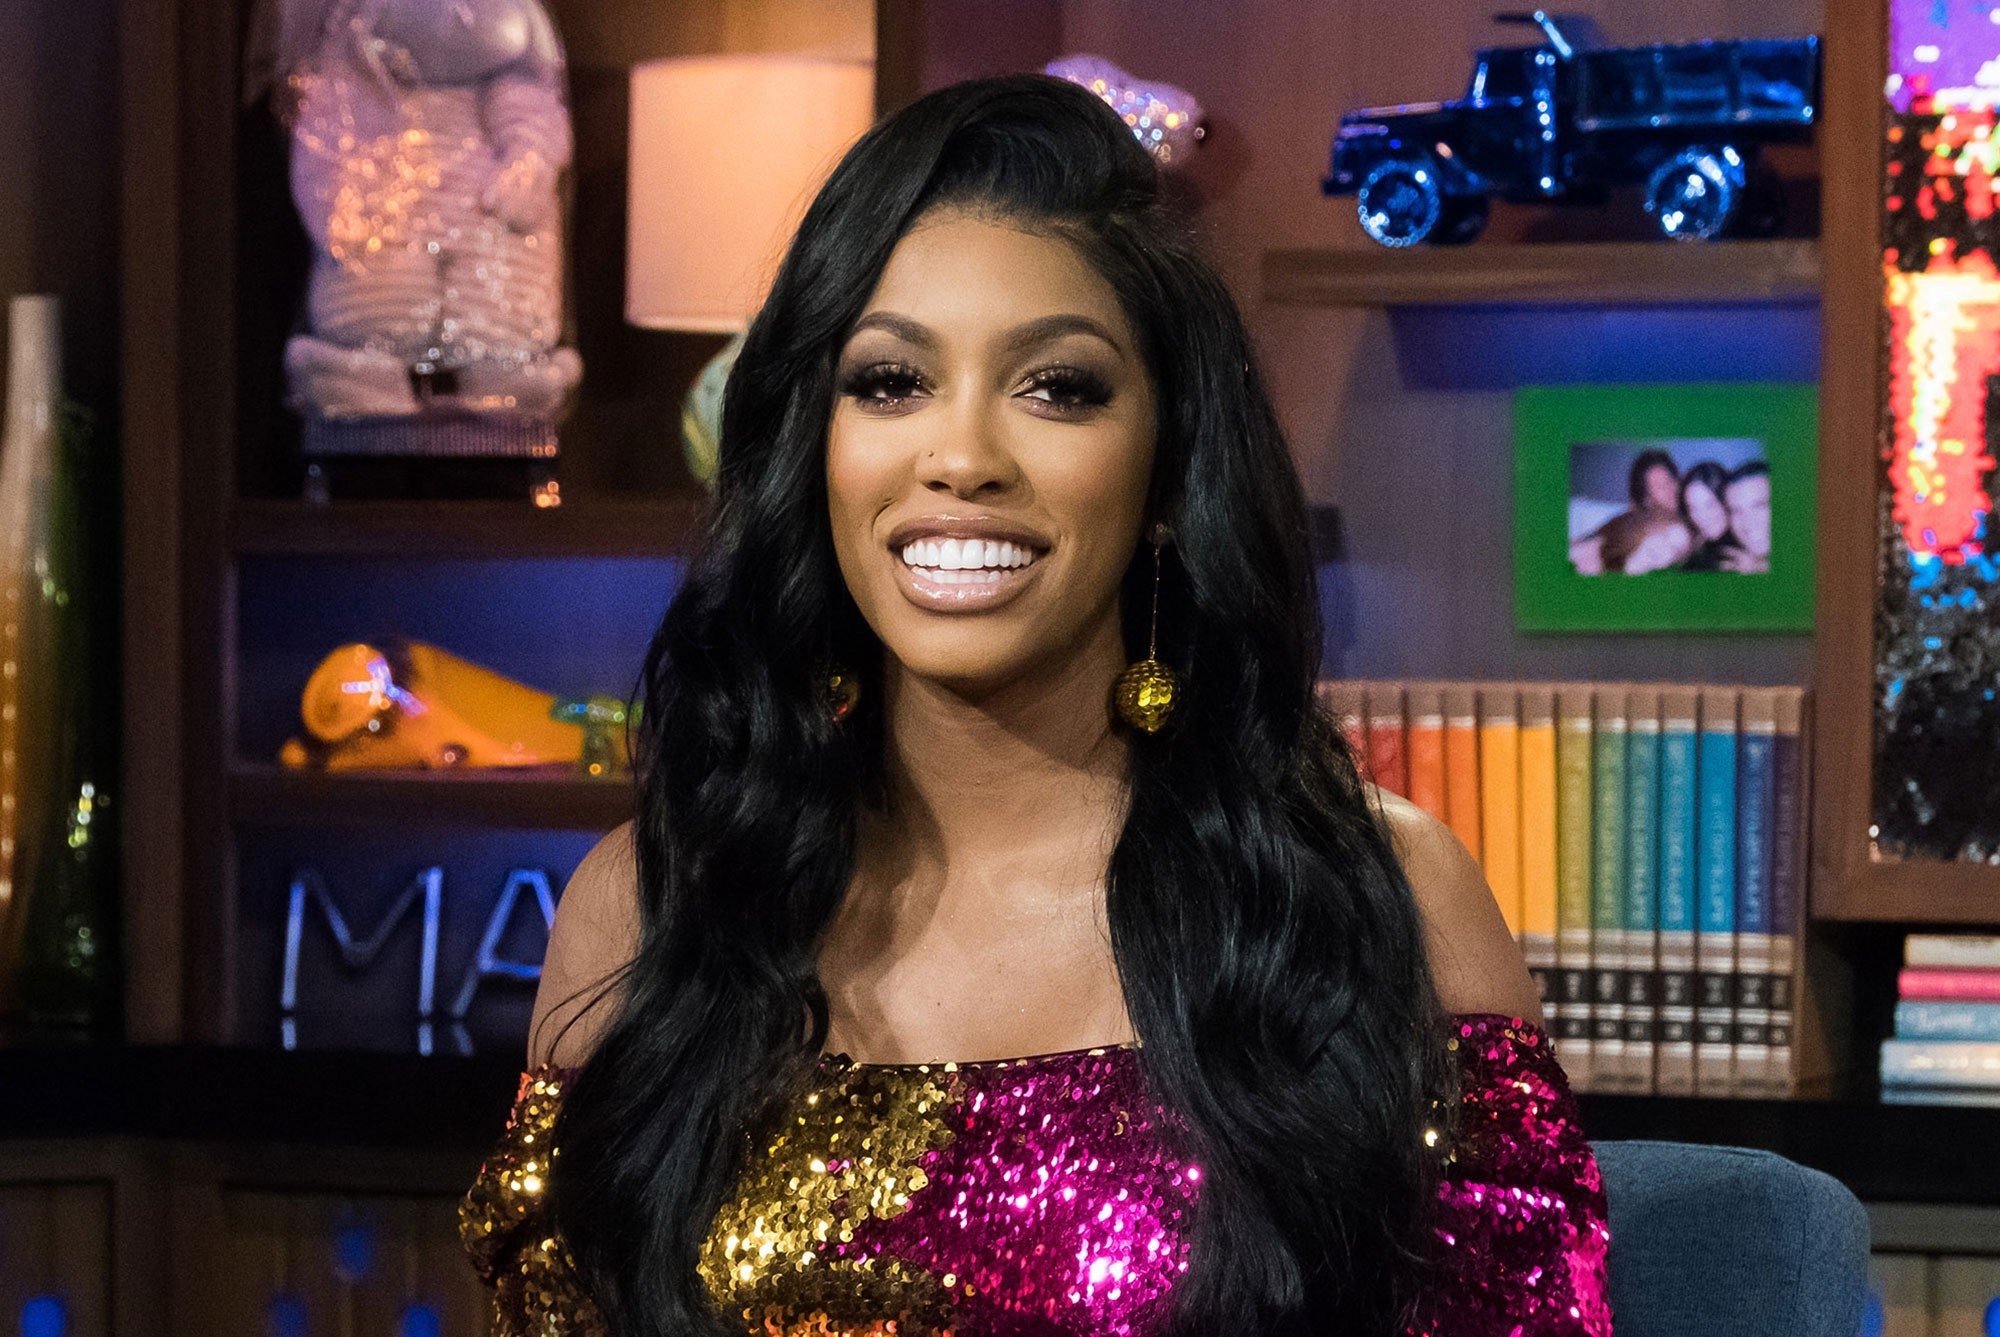 Porsha Williams' Latest Photo Featuring Pilar Jhena Has Fans In Awe – See The Girl's Classy Outfit Here